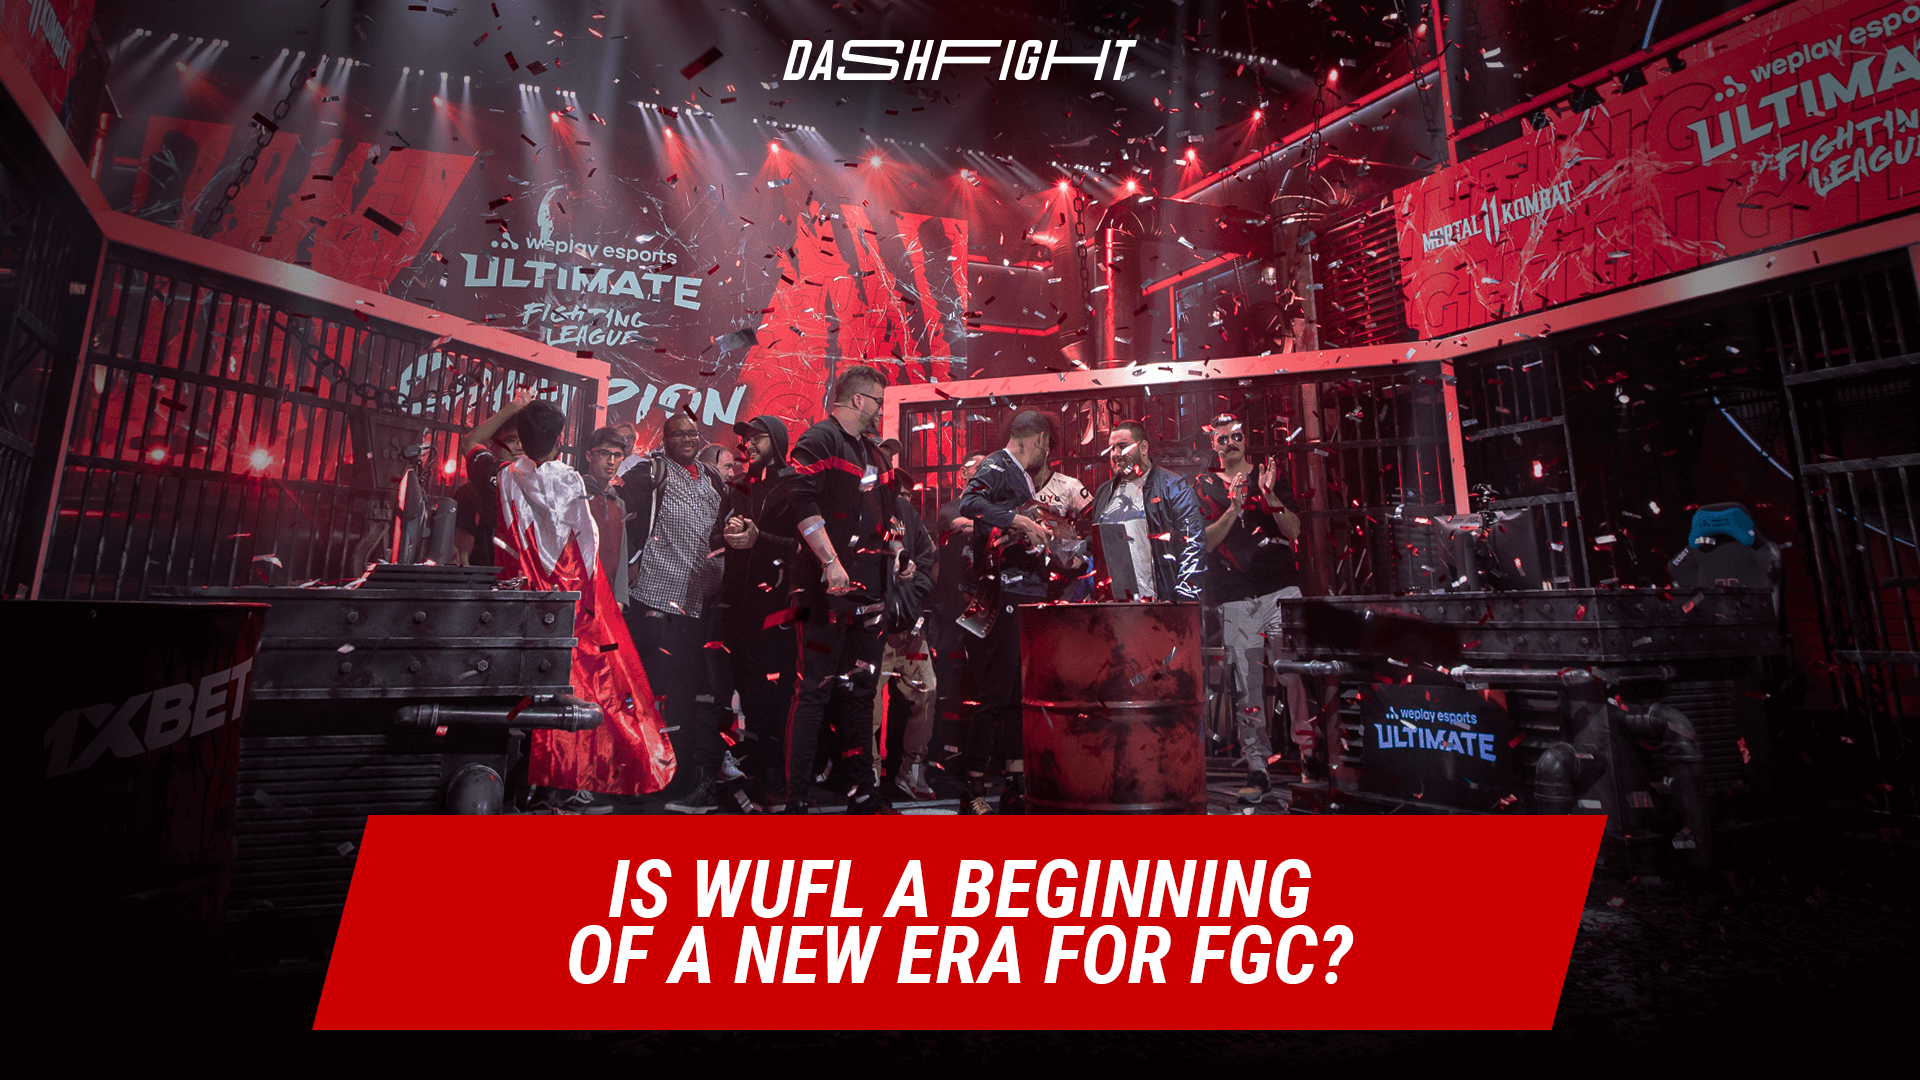 Is WUFL The Beginning of a New Era For FGC?